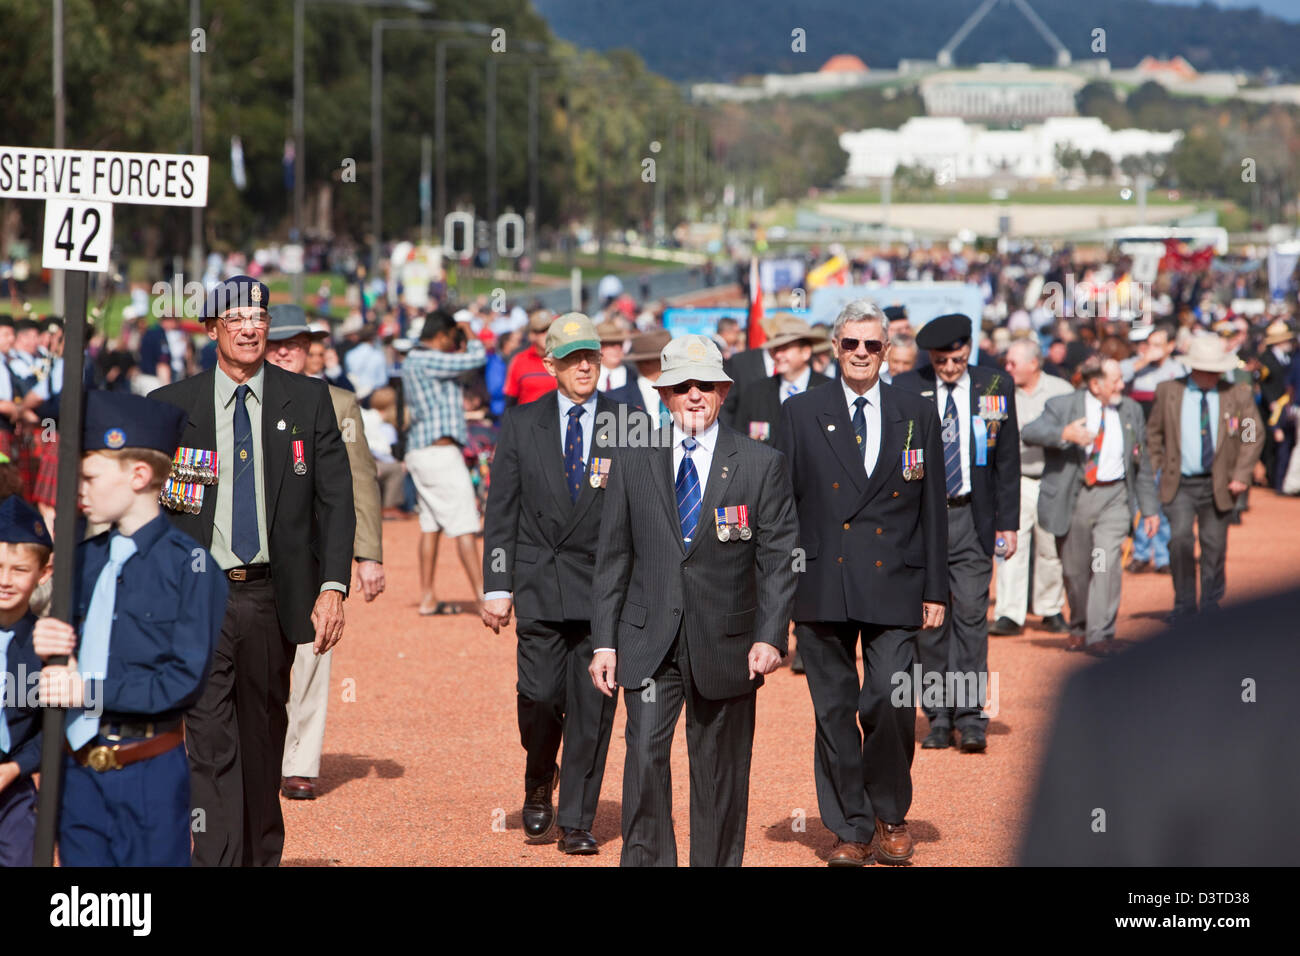 War veterans gather for Anzac Day commemorations. Canberra, Australian Capital Territory (ACT), Australia - Stock Image